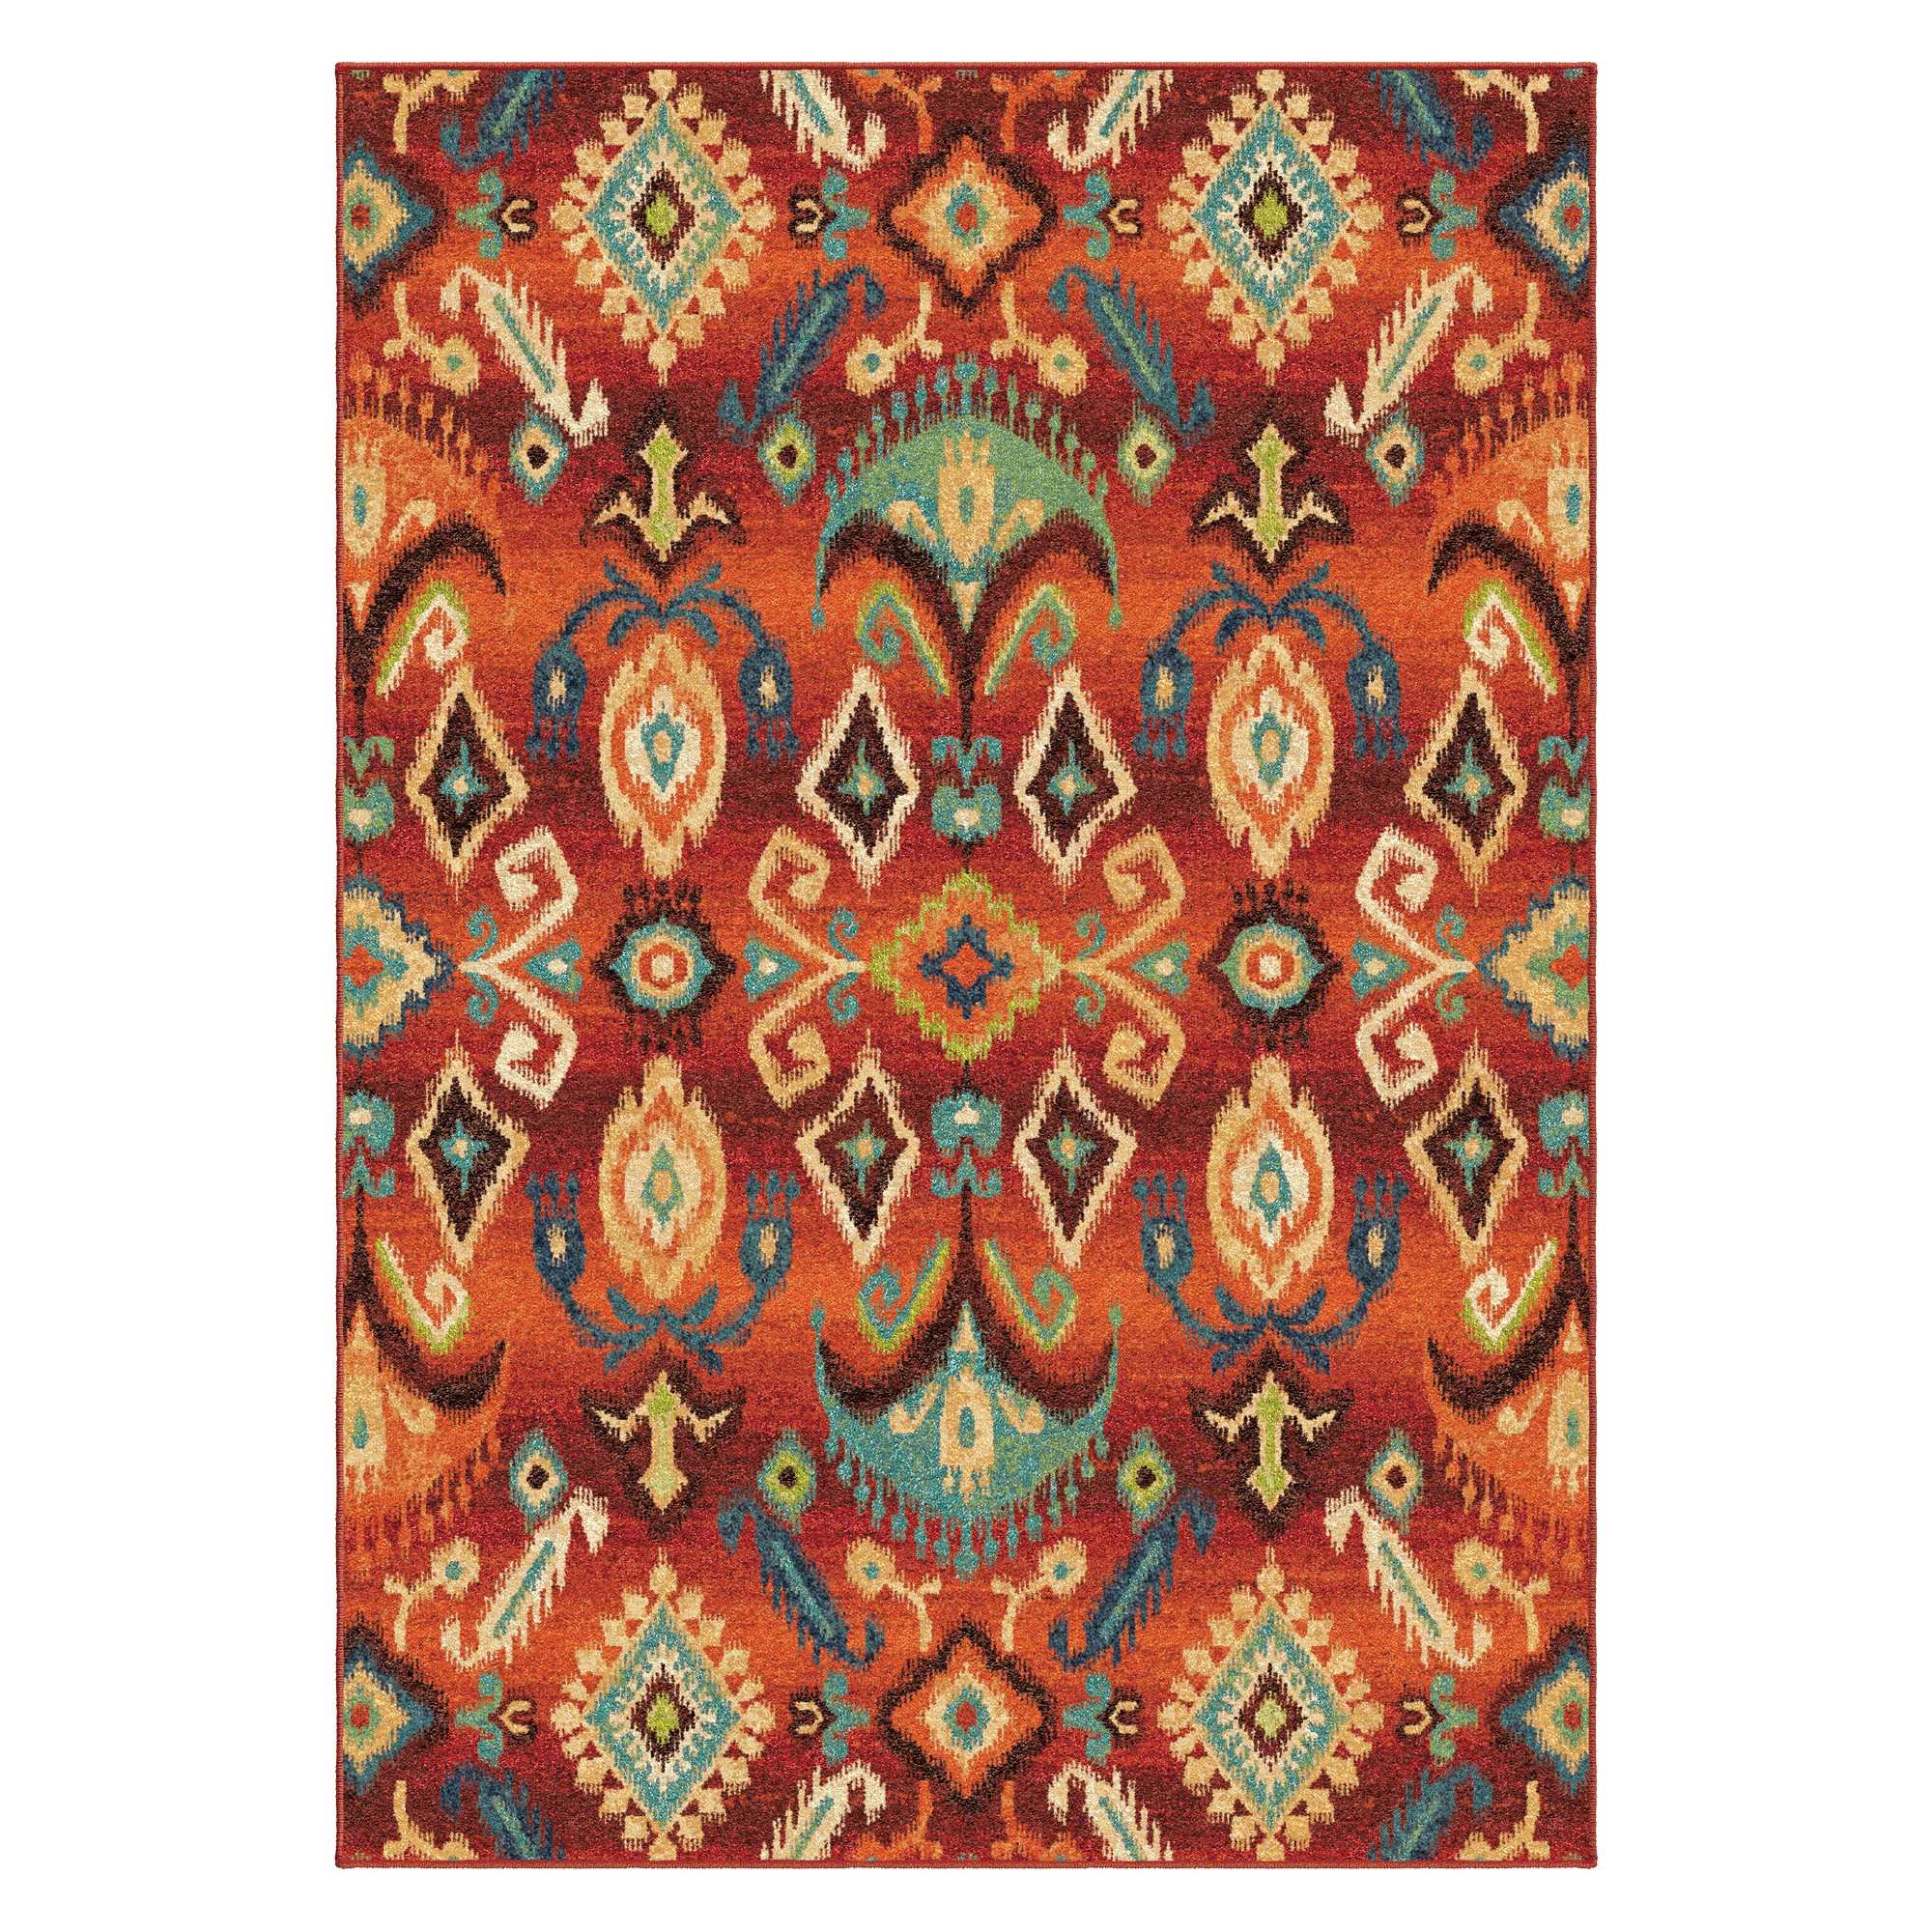 Monica Masquerade Area Rug Red 6 7 X9 8 Area Rugs Rug Stain Target Rug